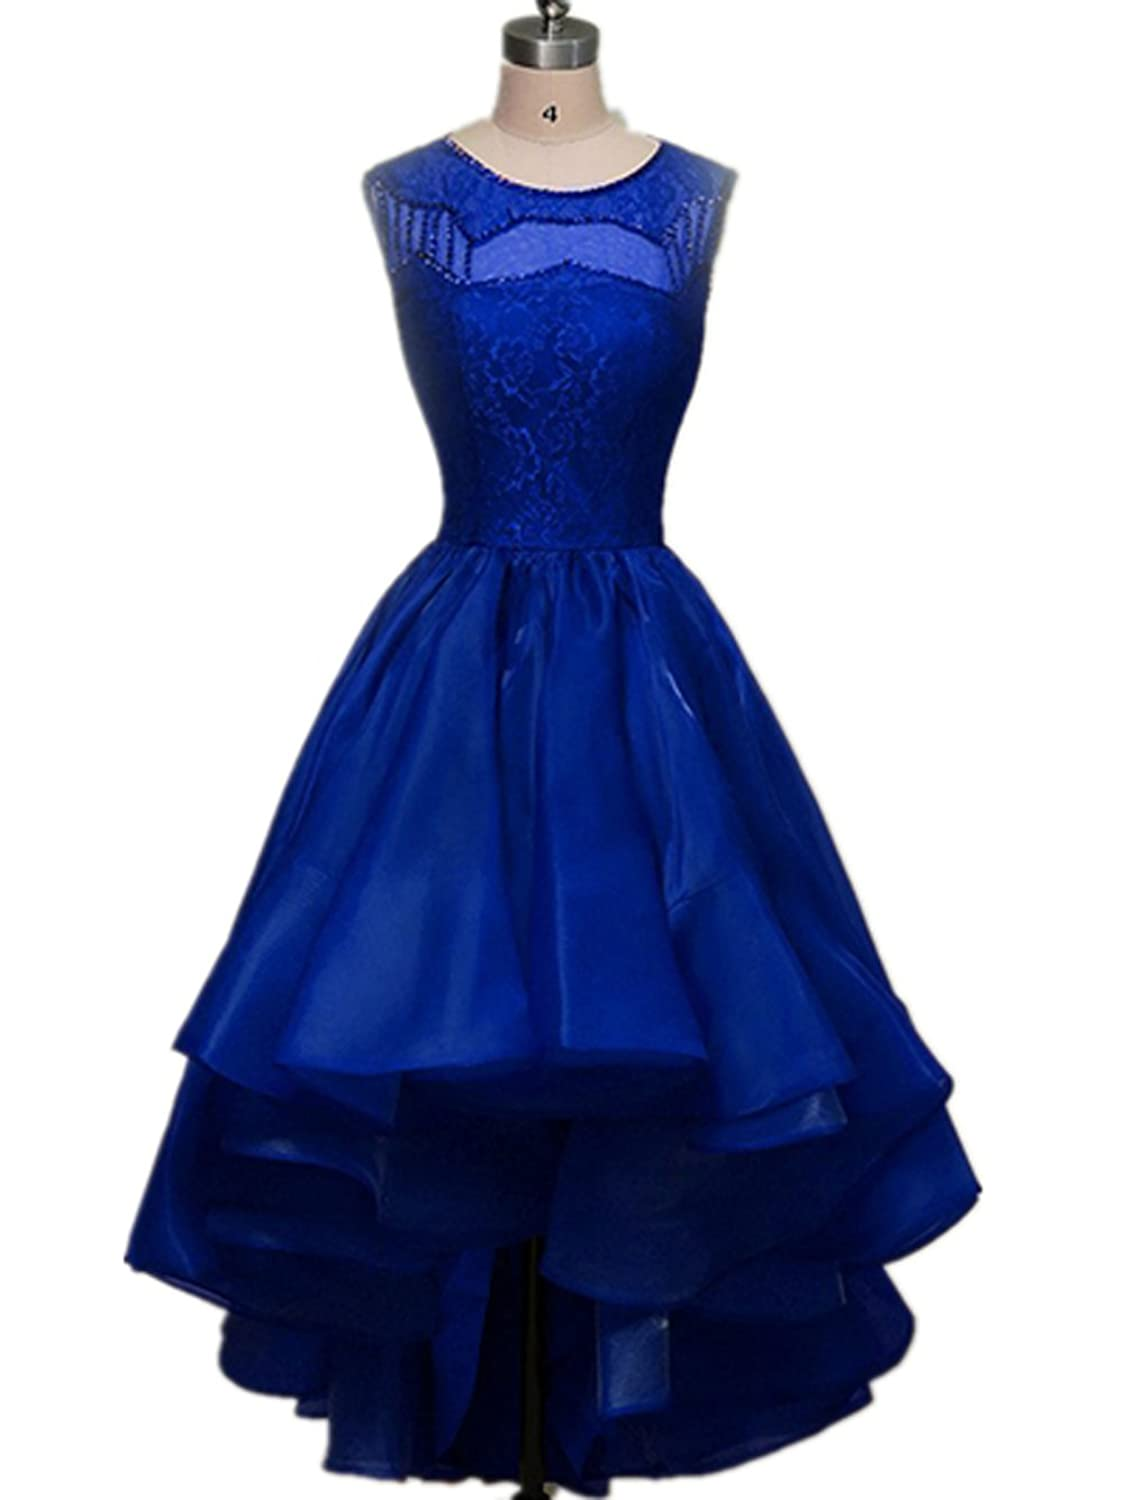 AIJIAYI Women's Scoop Beaded Asymmetrical Evening Party Cocktail Dresses Royal Blue US Size 4